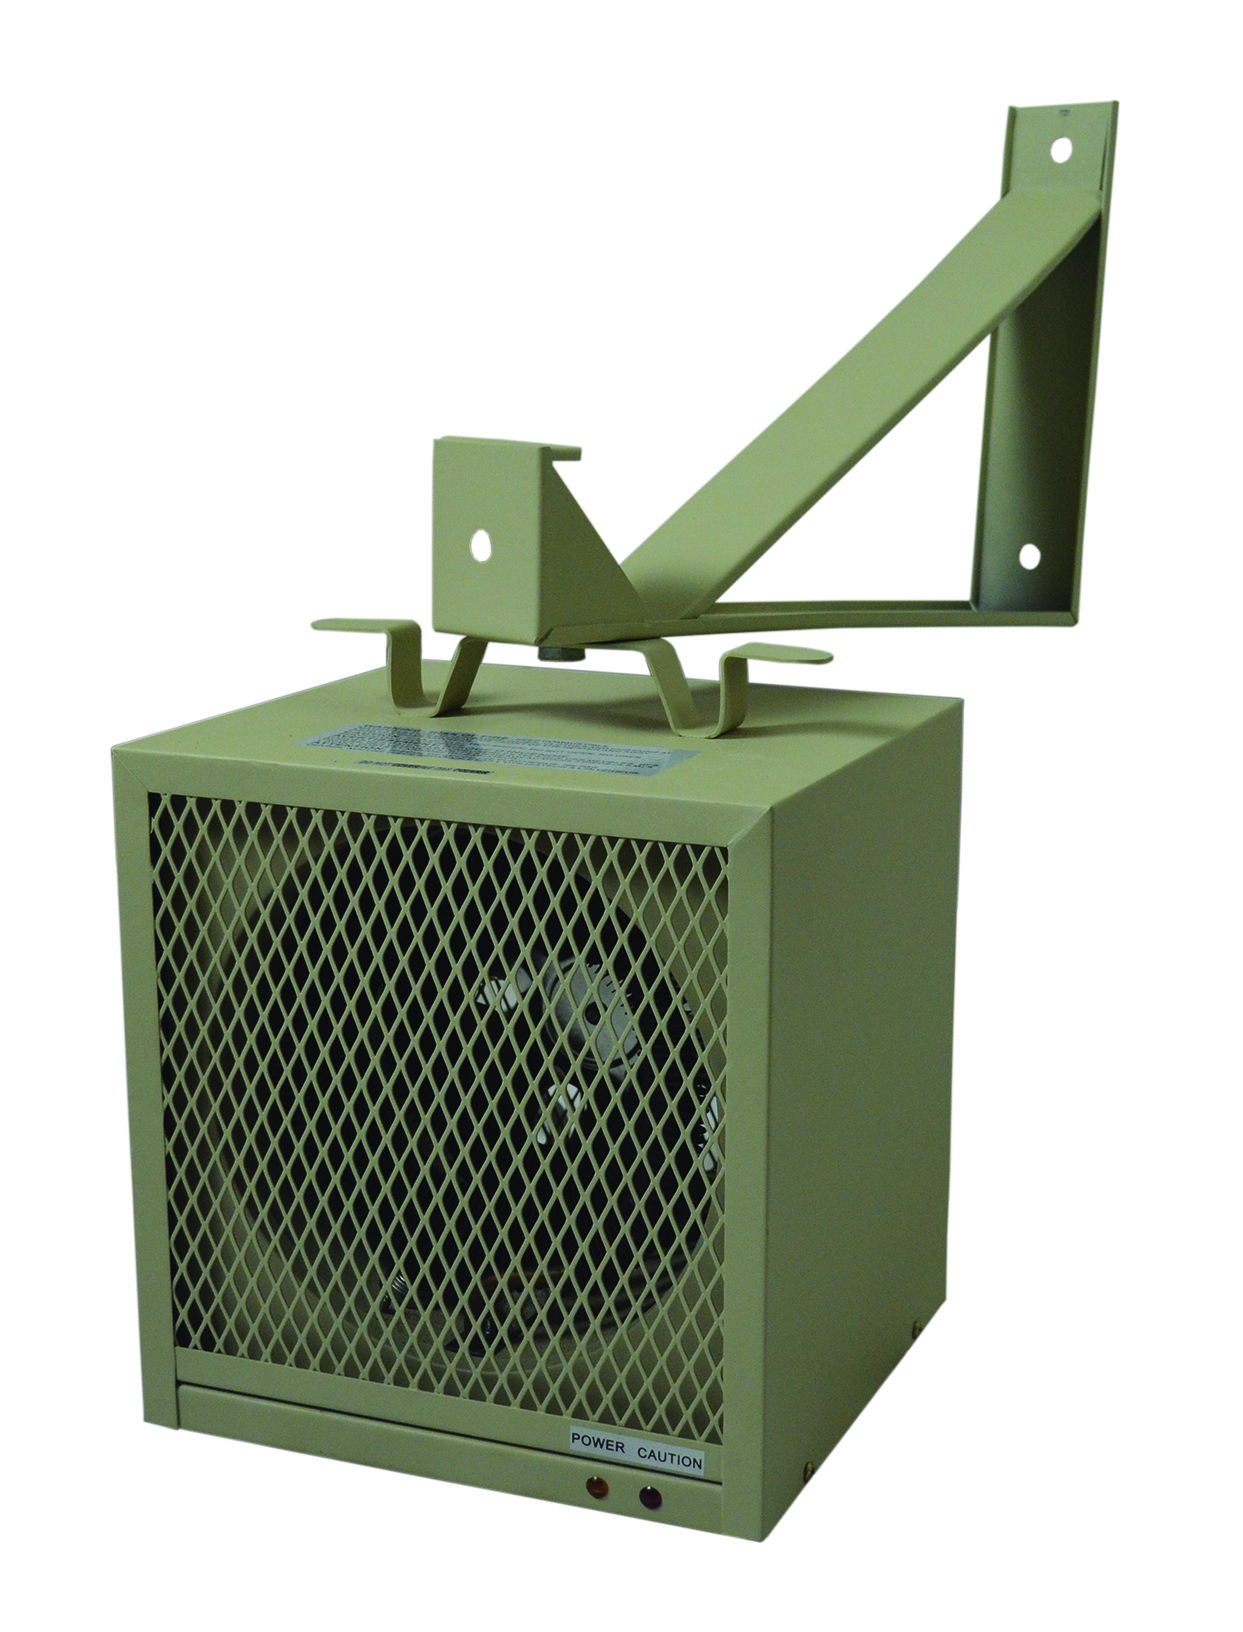 Garage Workshop Fan Tpi Hf5848tc 4800 3600w 240 208v Fan Forced Garage Workshop Portable Heater